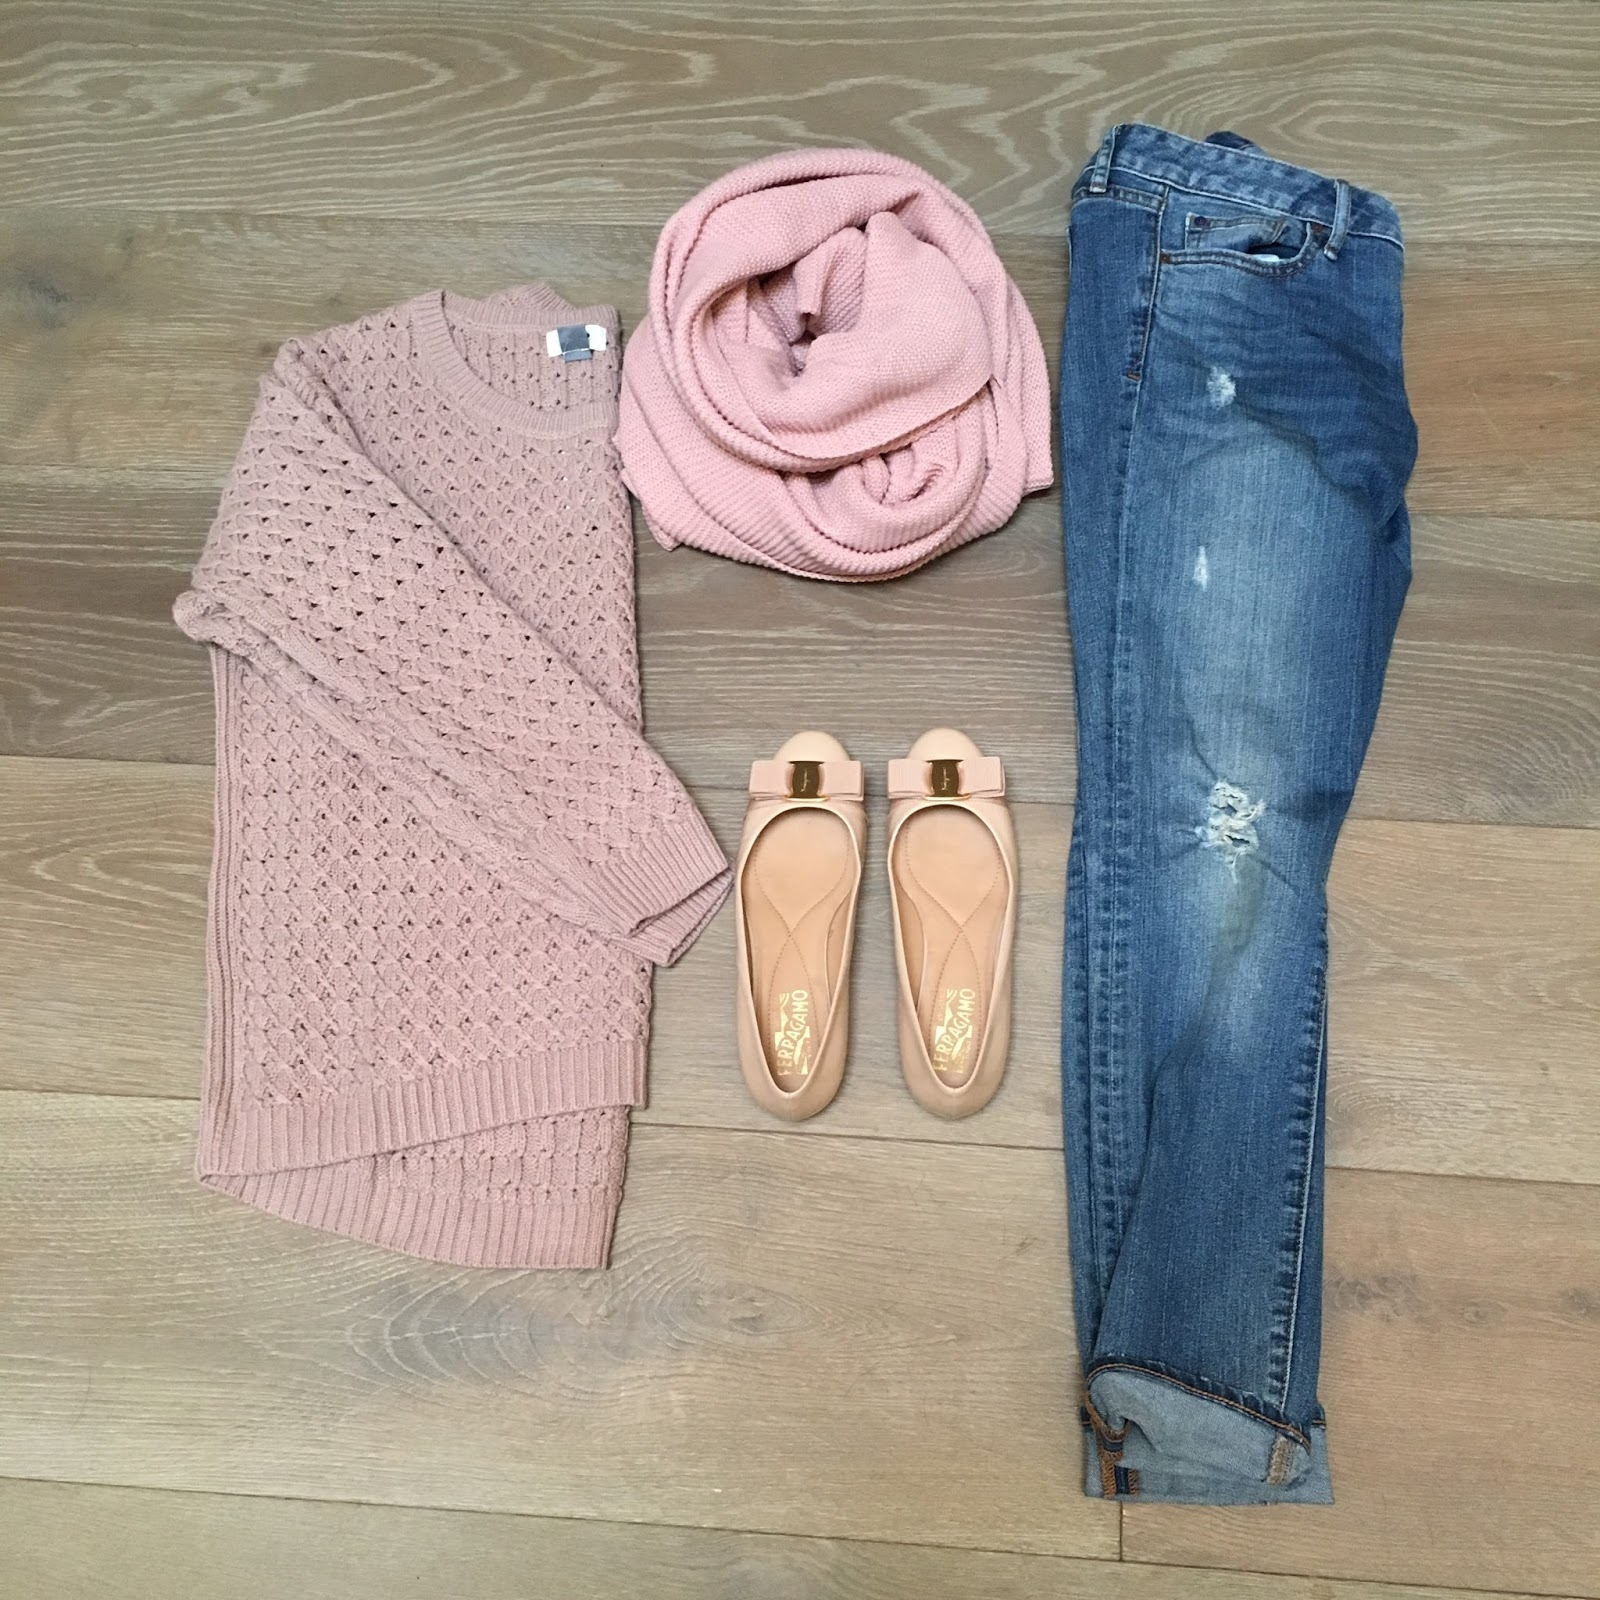 blush sweater and scarf outfit